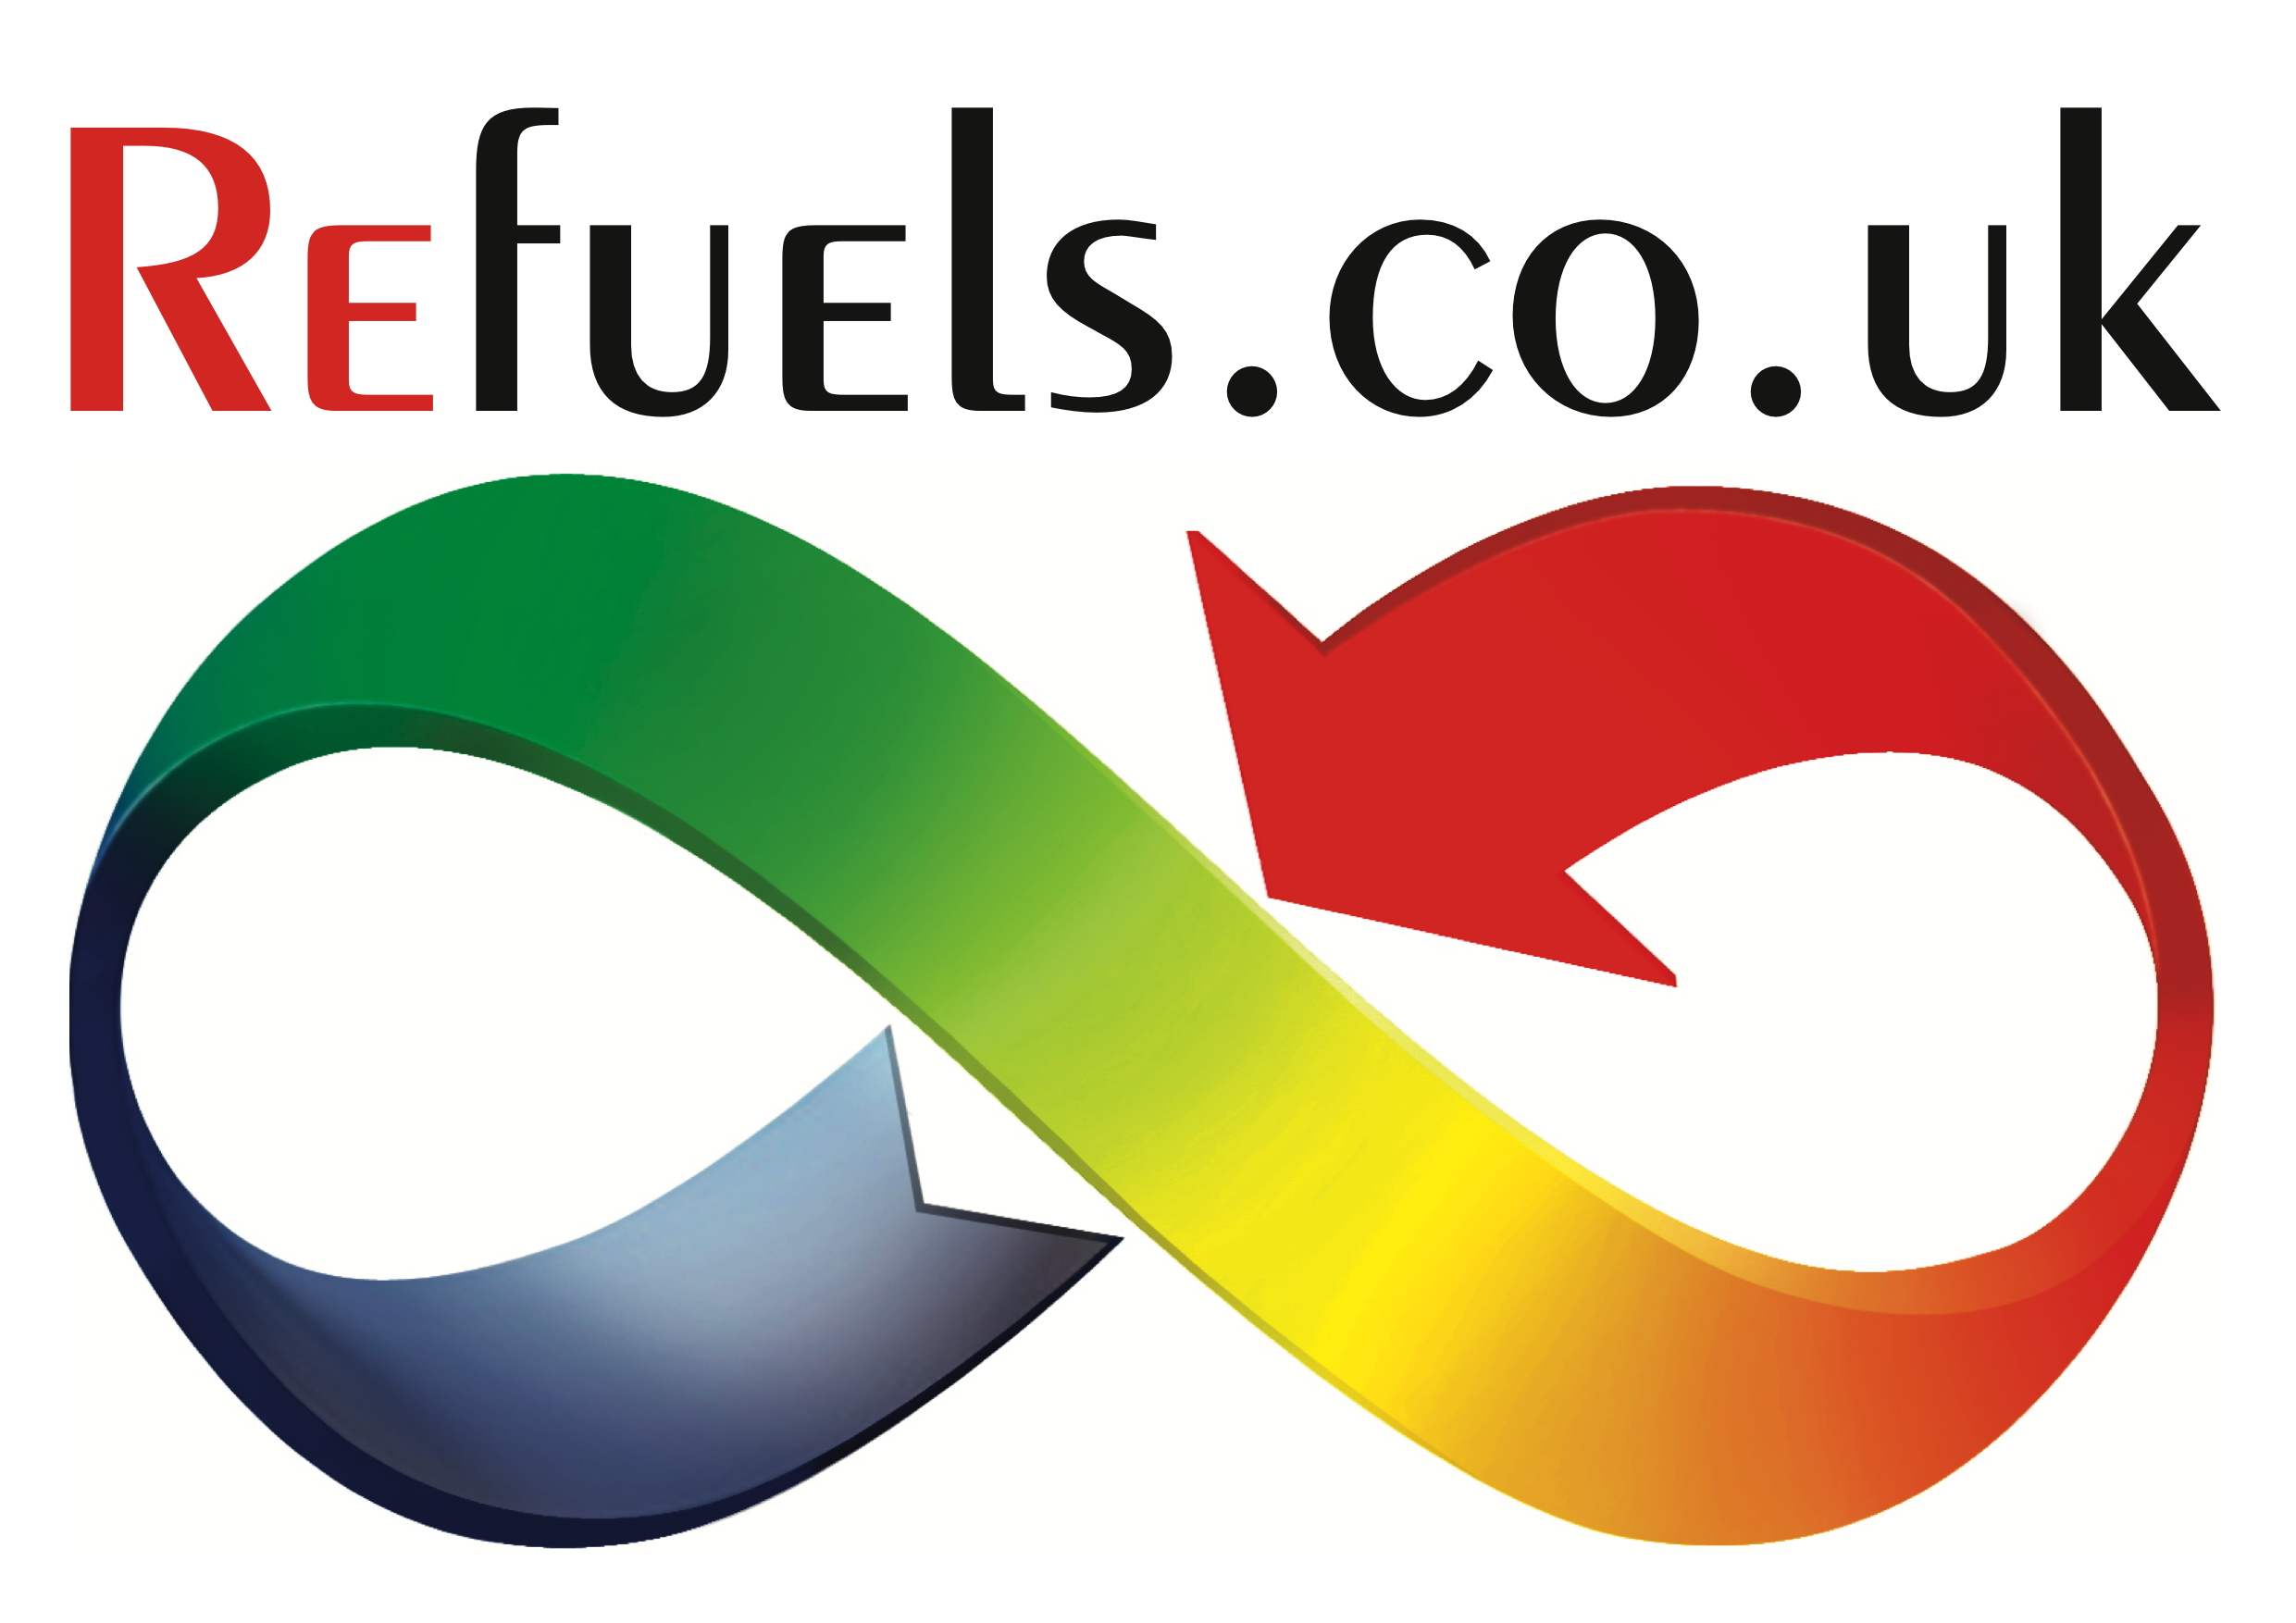 https://esrg.de/media/Member-Logos/Refuels_Logo.jpg